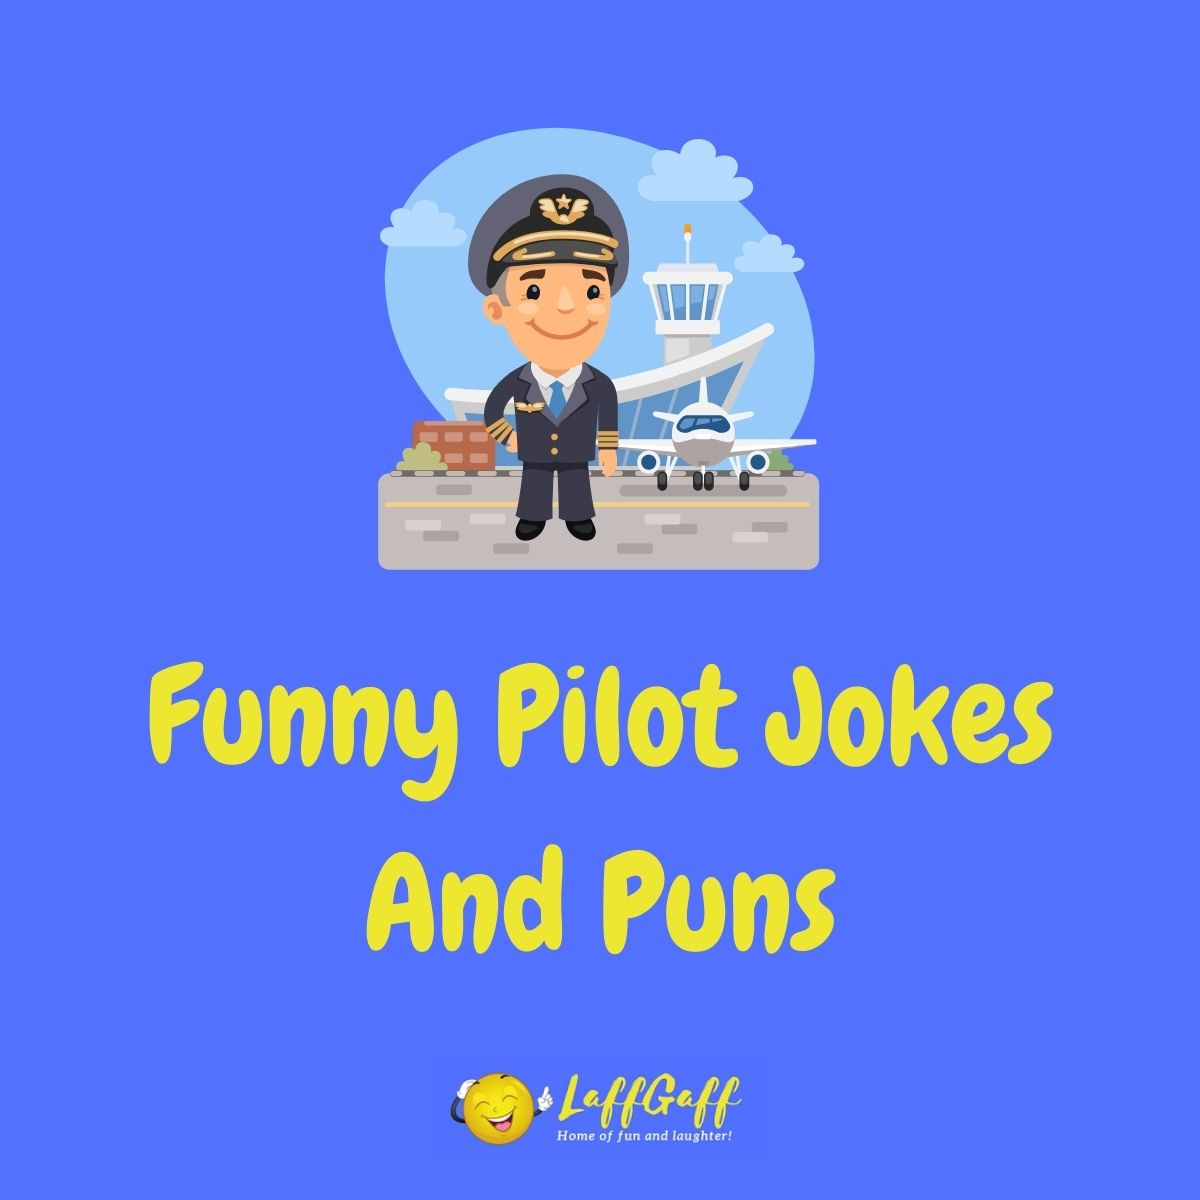 Featured image for a page of funny pilot jokes and puns.